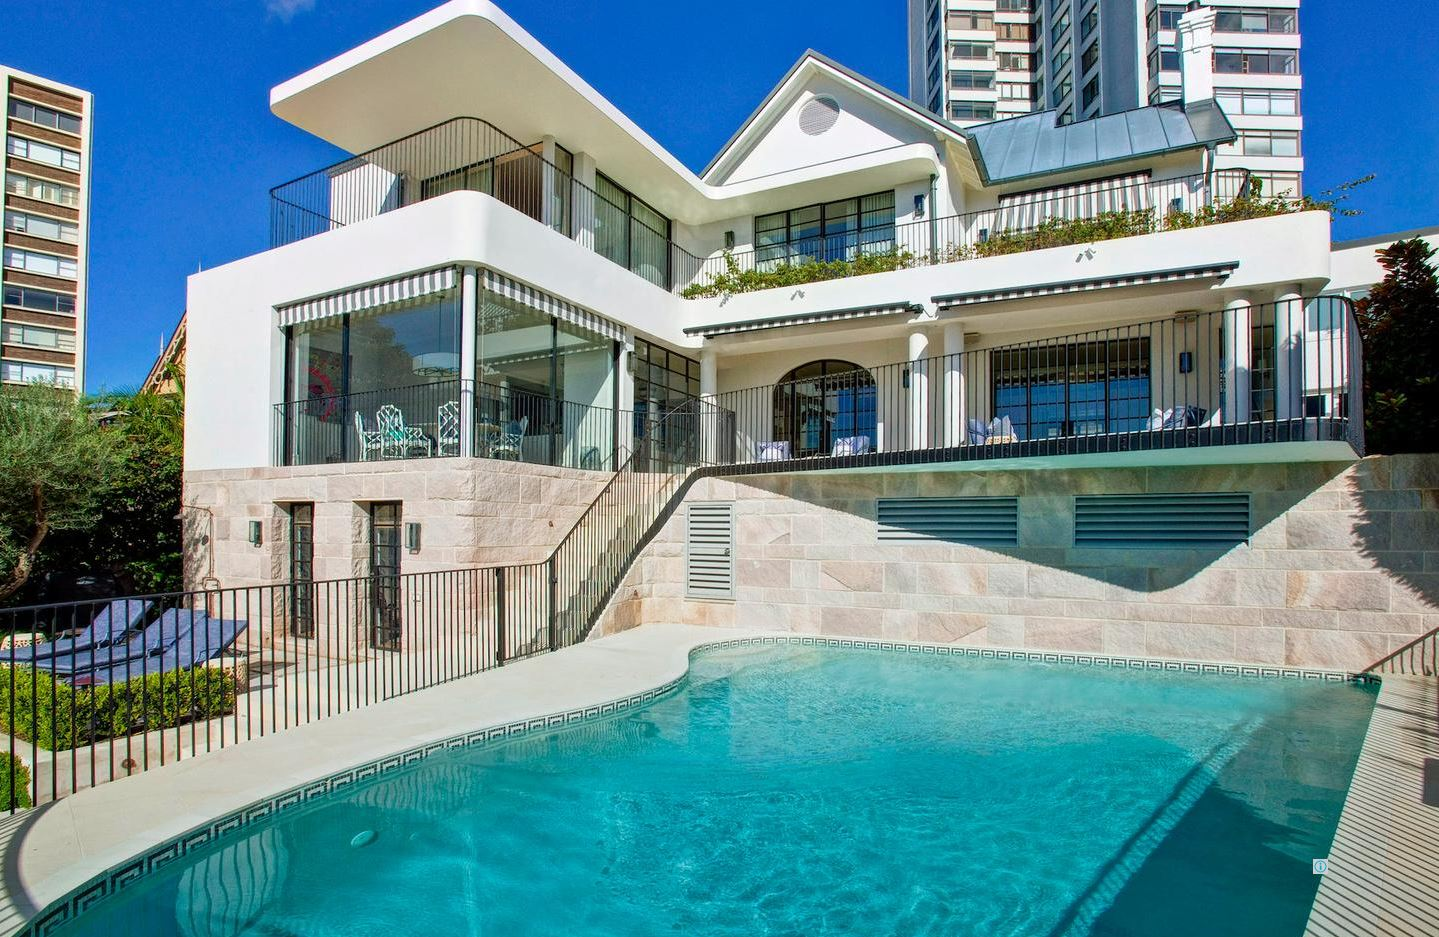 australia's most expensive suburbs - 9homes